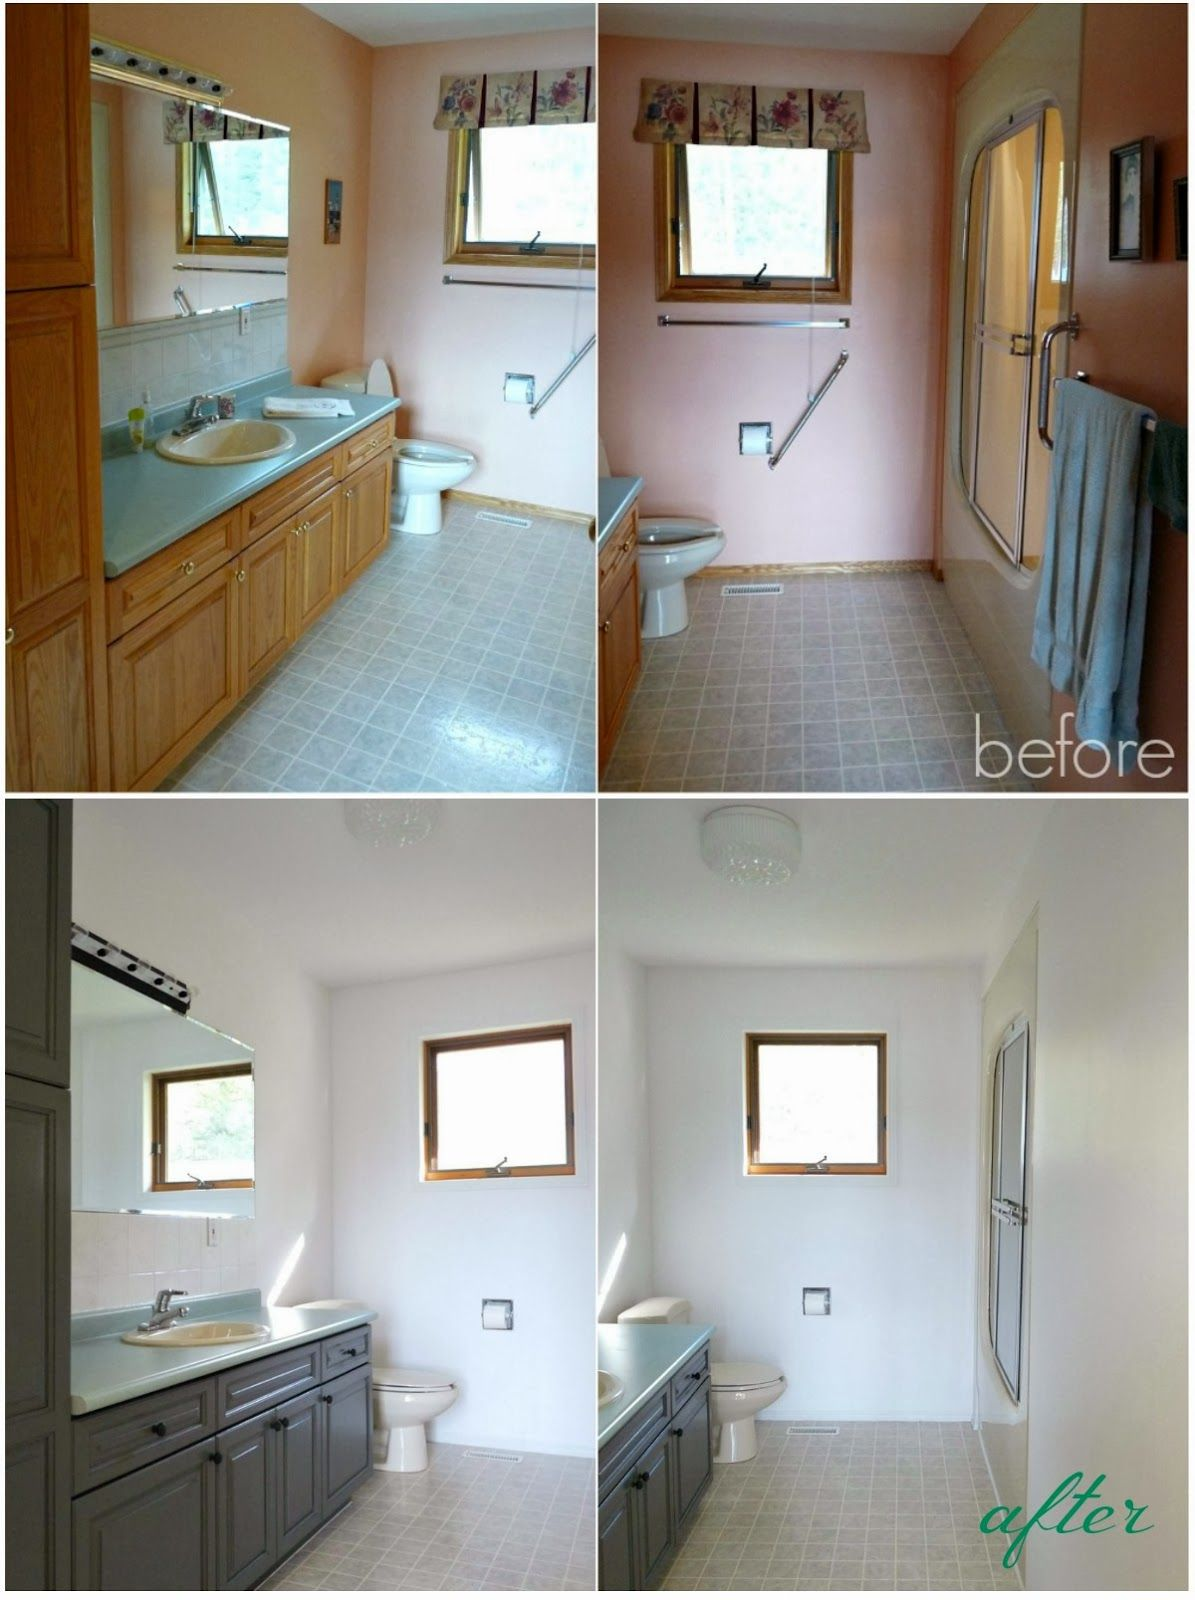 Quick Easy Cheap And Impactful Bathroom Update Home Decor - Before and after bathroom updates